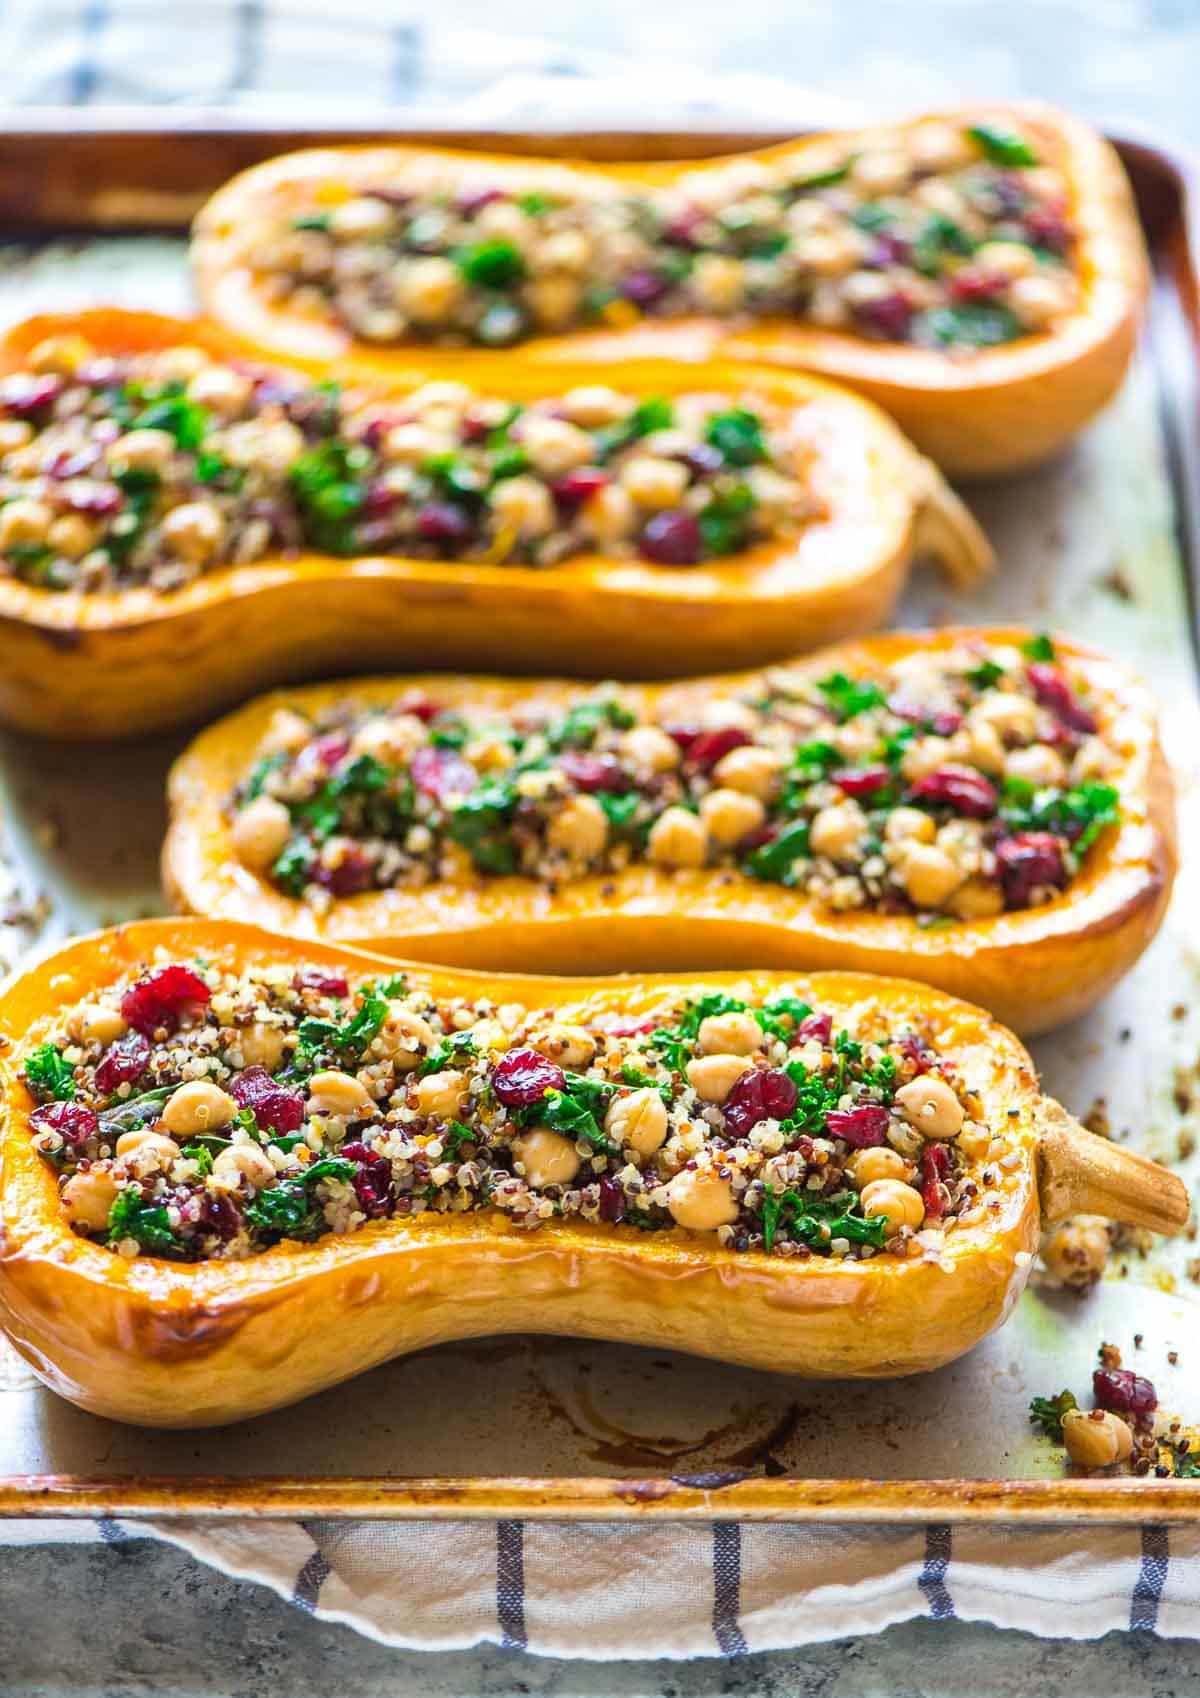 Vegan Stuffed Butternut Squash with Quinoa Cranberries and Kale